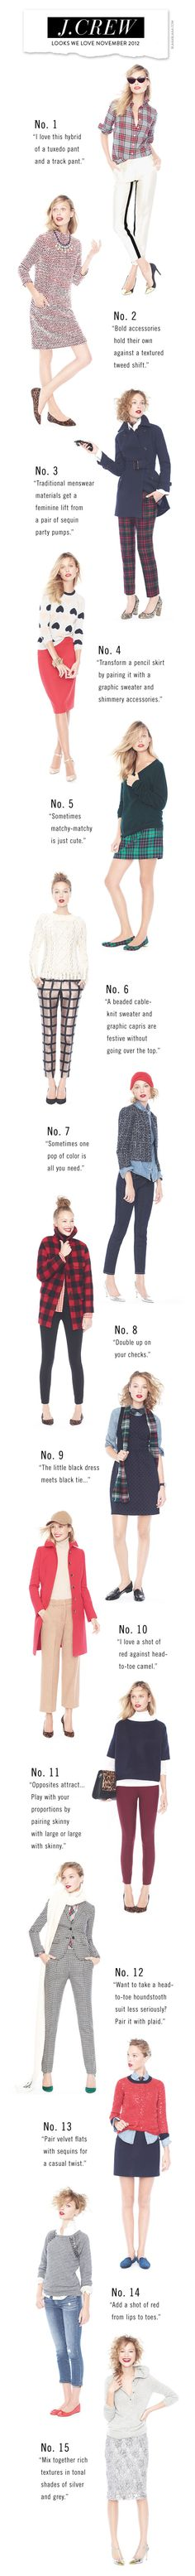 J.Crew Looks We Love November 2012 - outfit ideas